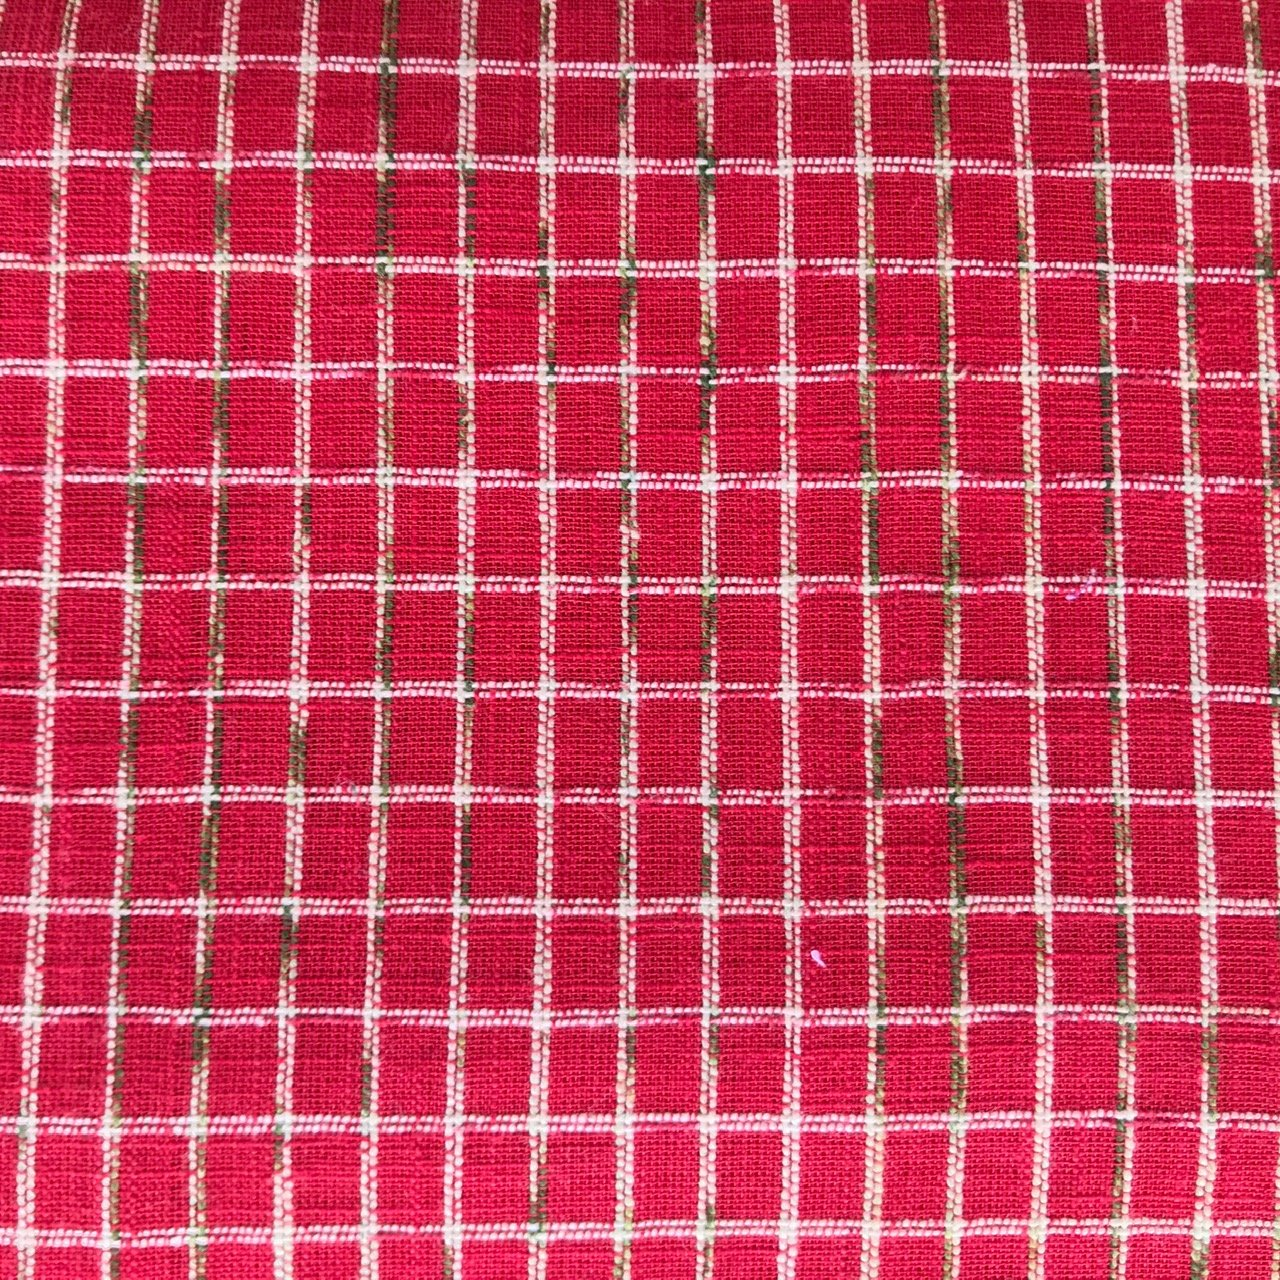 Squares Slubs Red 100%cotton textured woven 44 wide